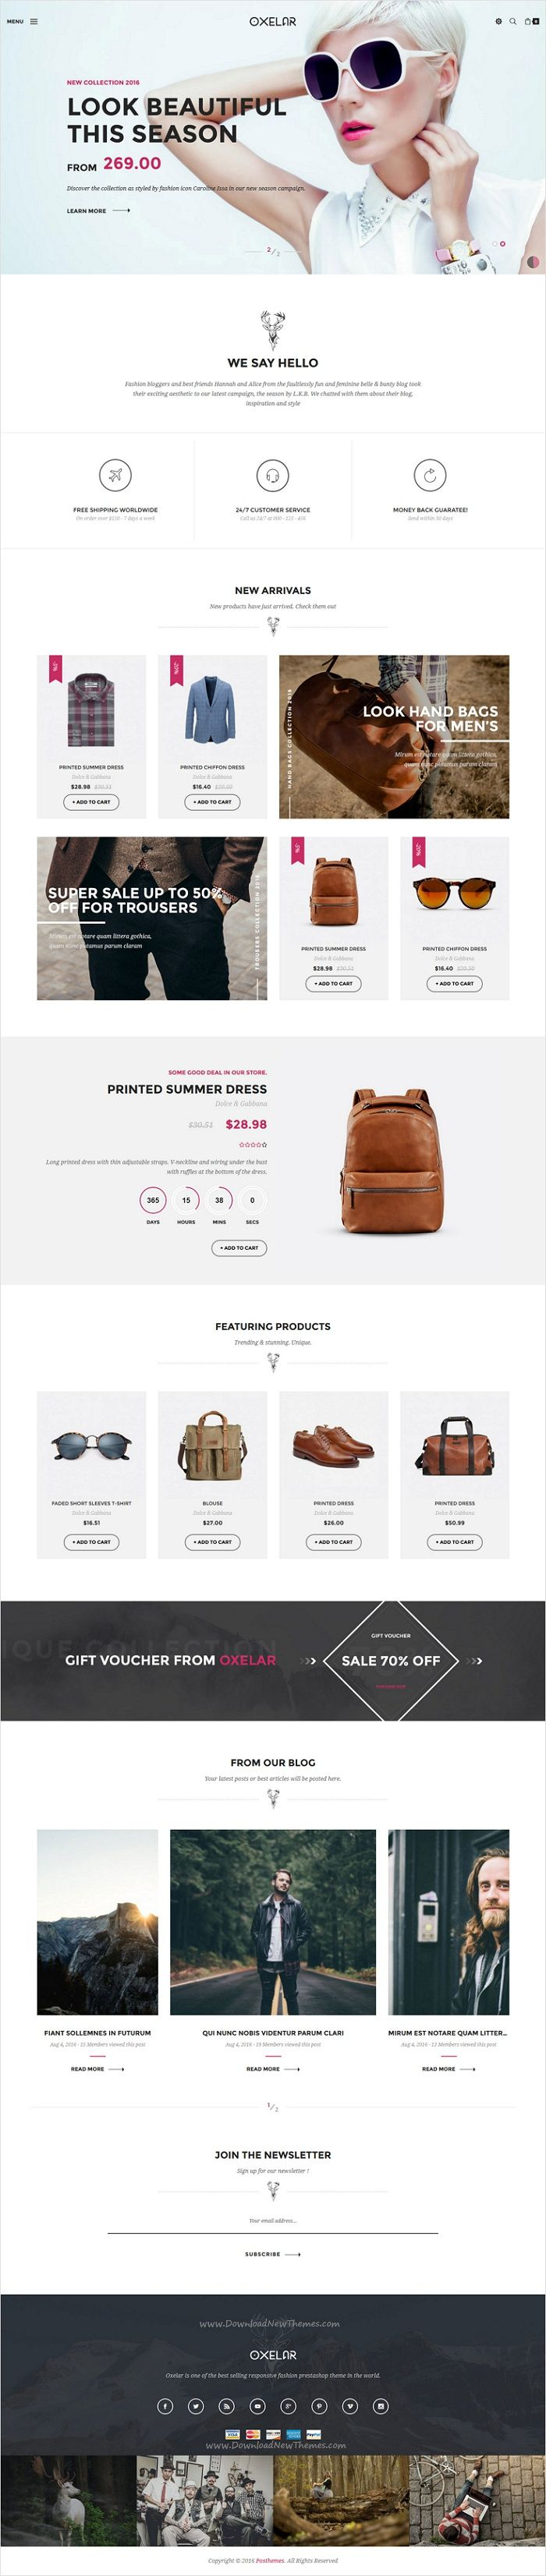 Oxelar is beautiful and stylish #Prestashop theme for stunning #eCommerce #website with 6 multipurpose homepage layouts download now➩ https://themeforest.net/item/oxelar-new-theme-for-prestashop-with-new-styles/17728311?ref=Datasata